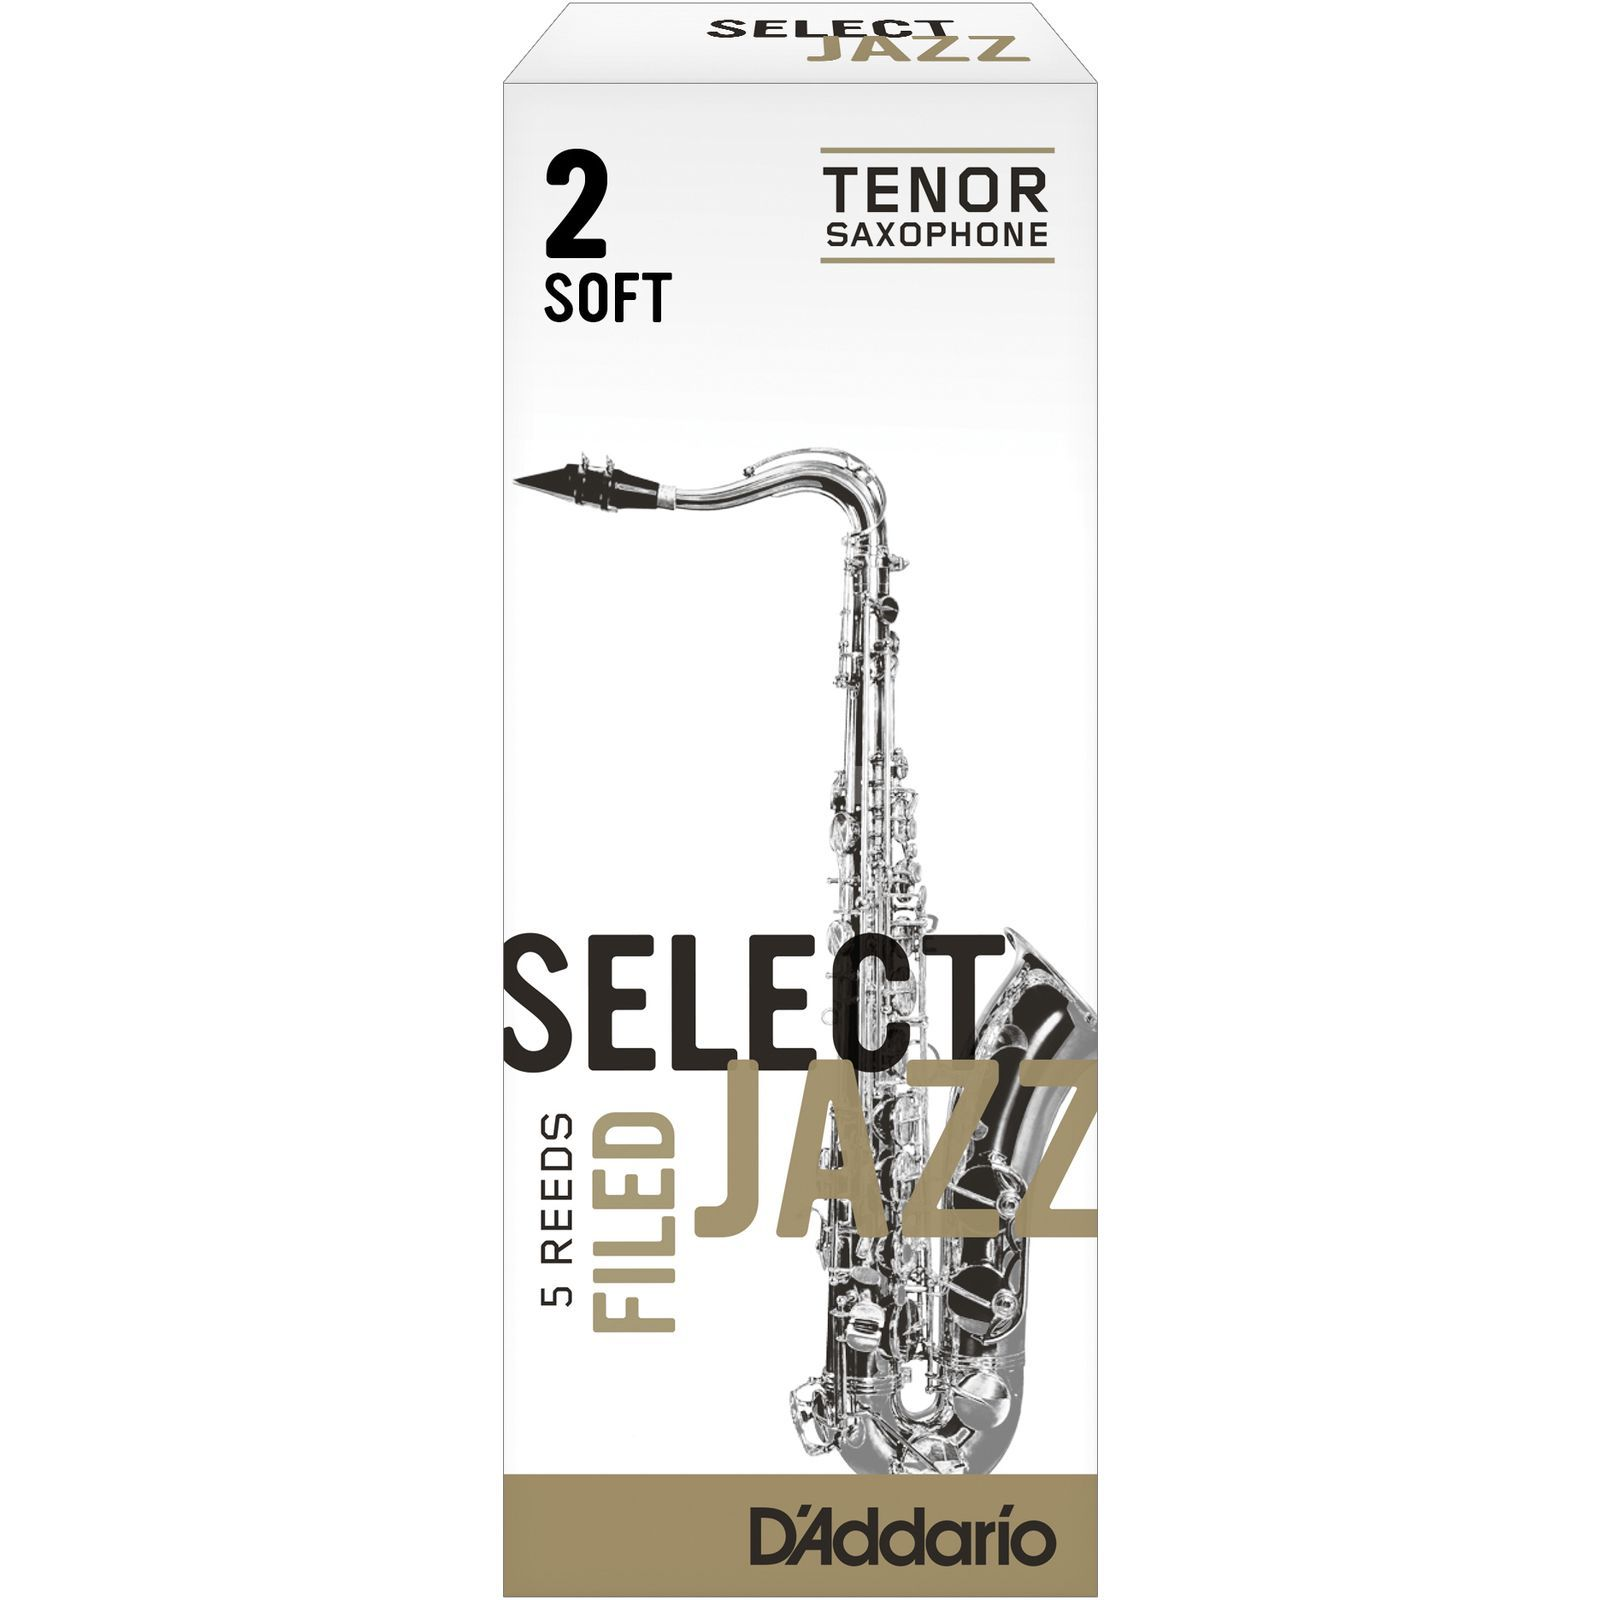 D'Addario Woodwinds Select Jazz Filed Tenor Sax 2S Produktbild